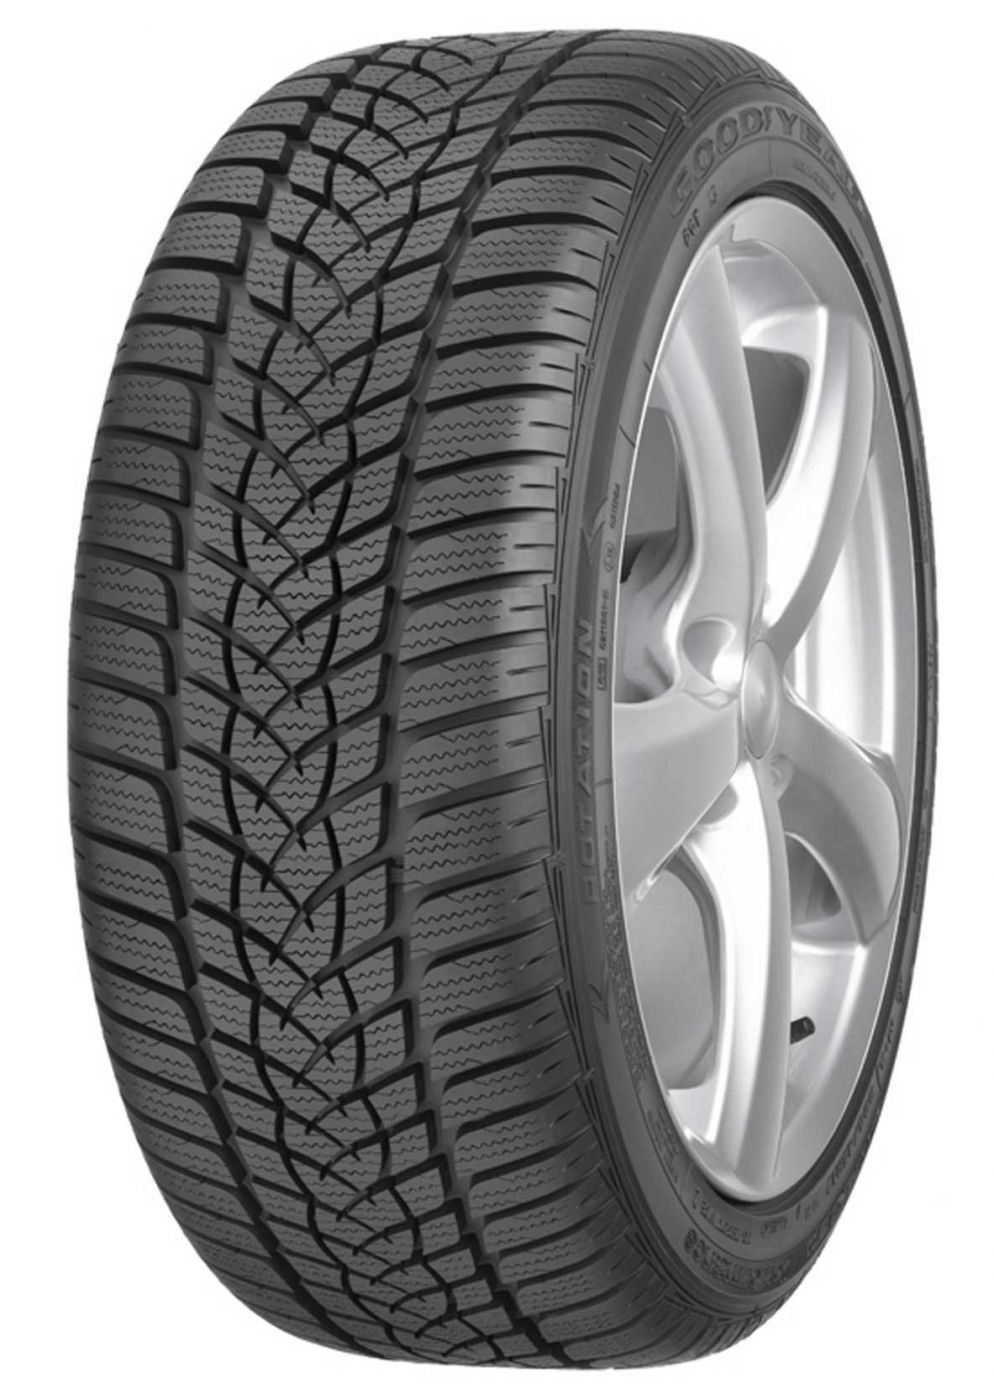 Goodyear 205/55/16  H 91 UG PERFORMANCE 2  Run On Flat